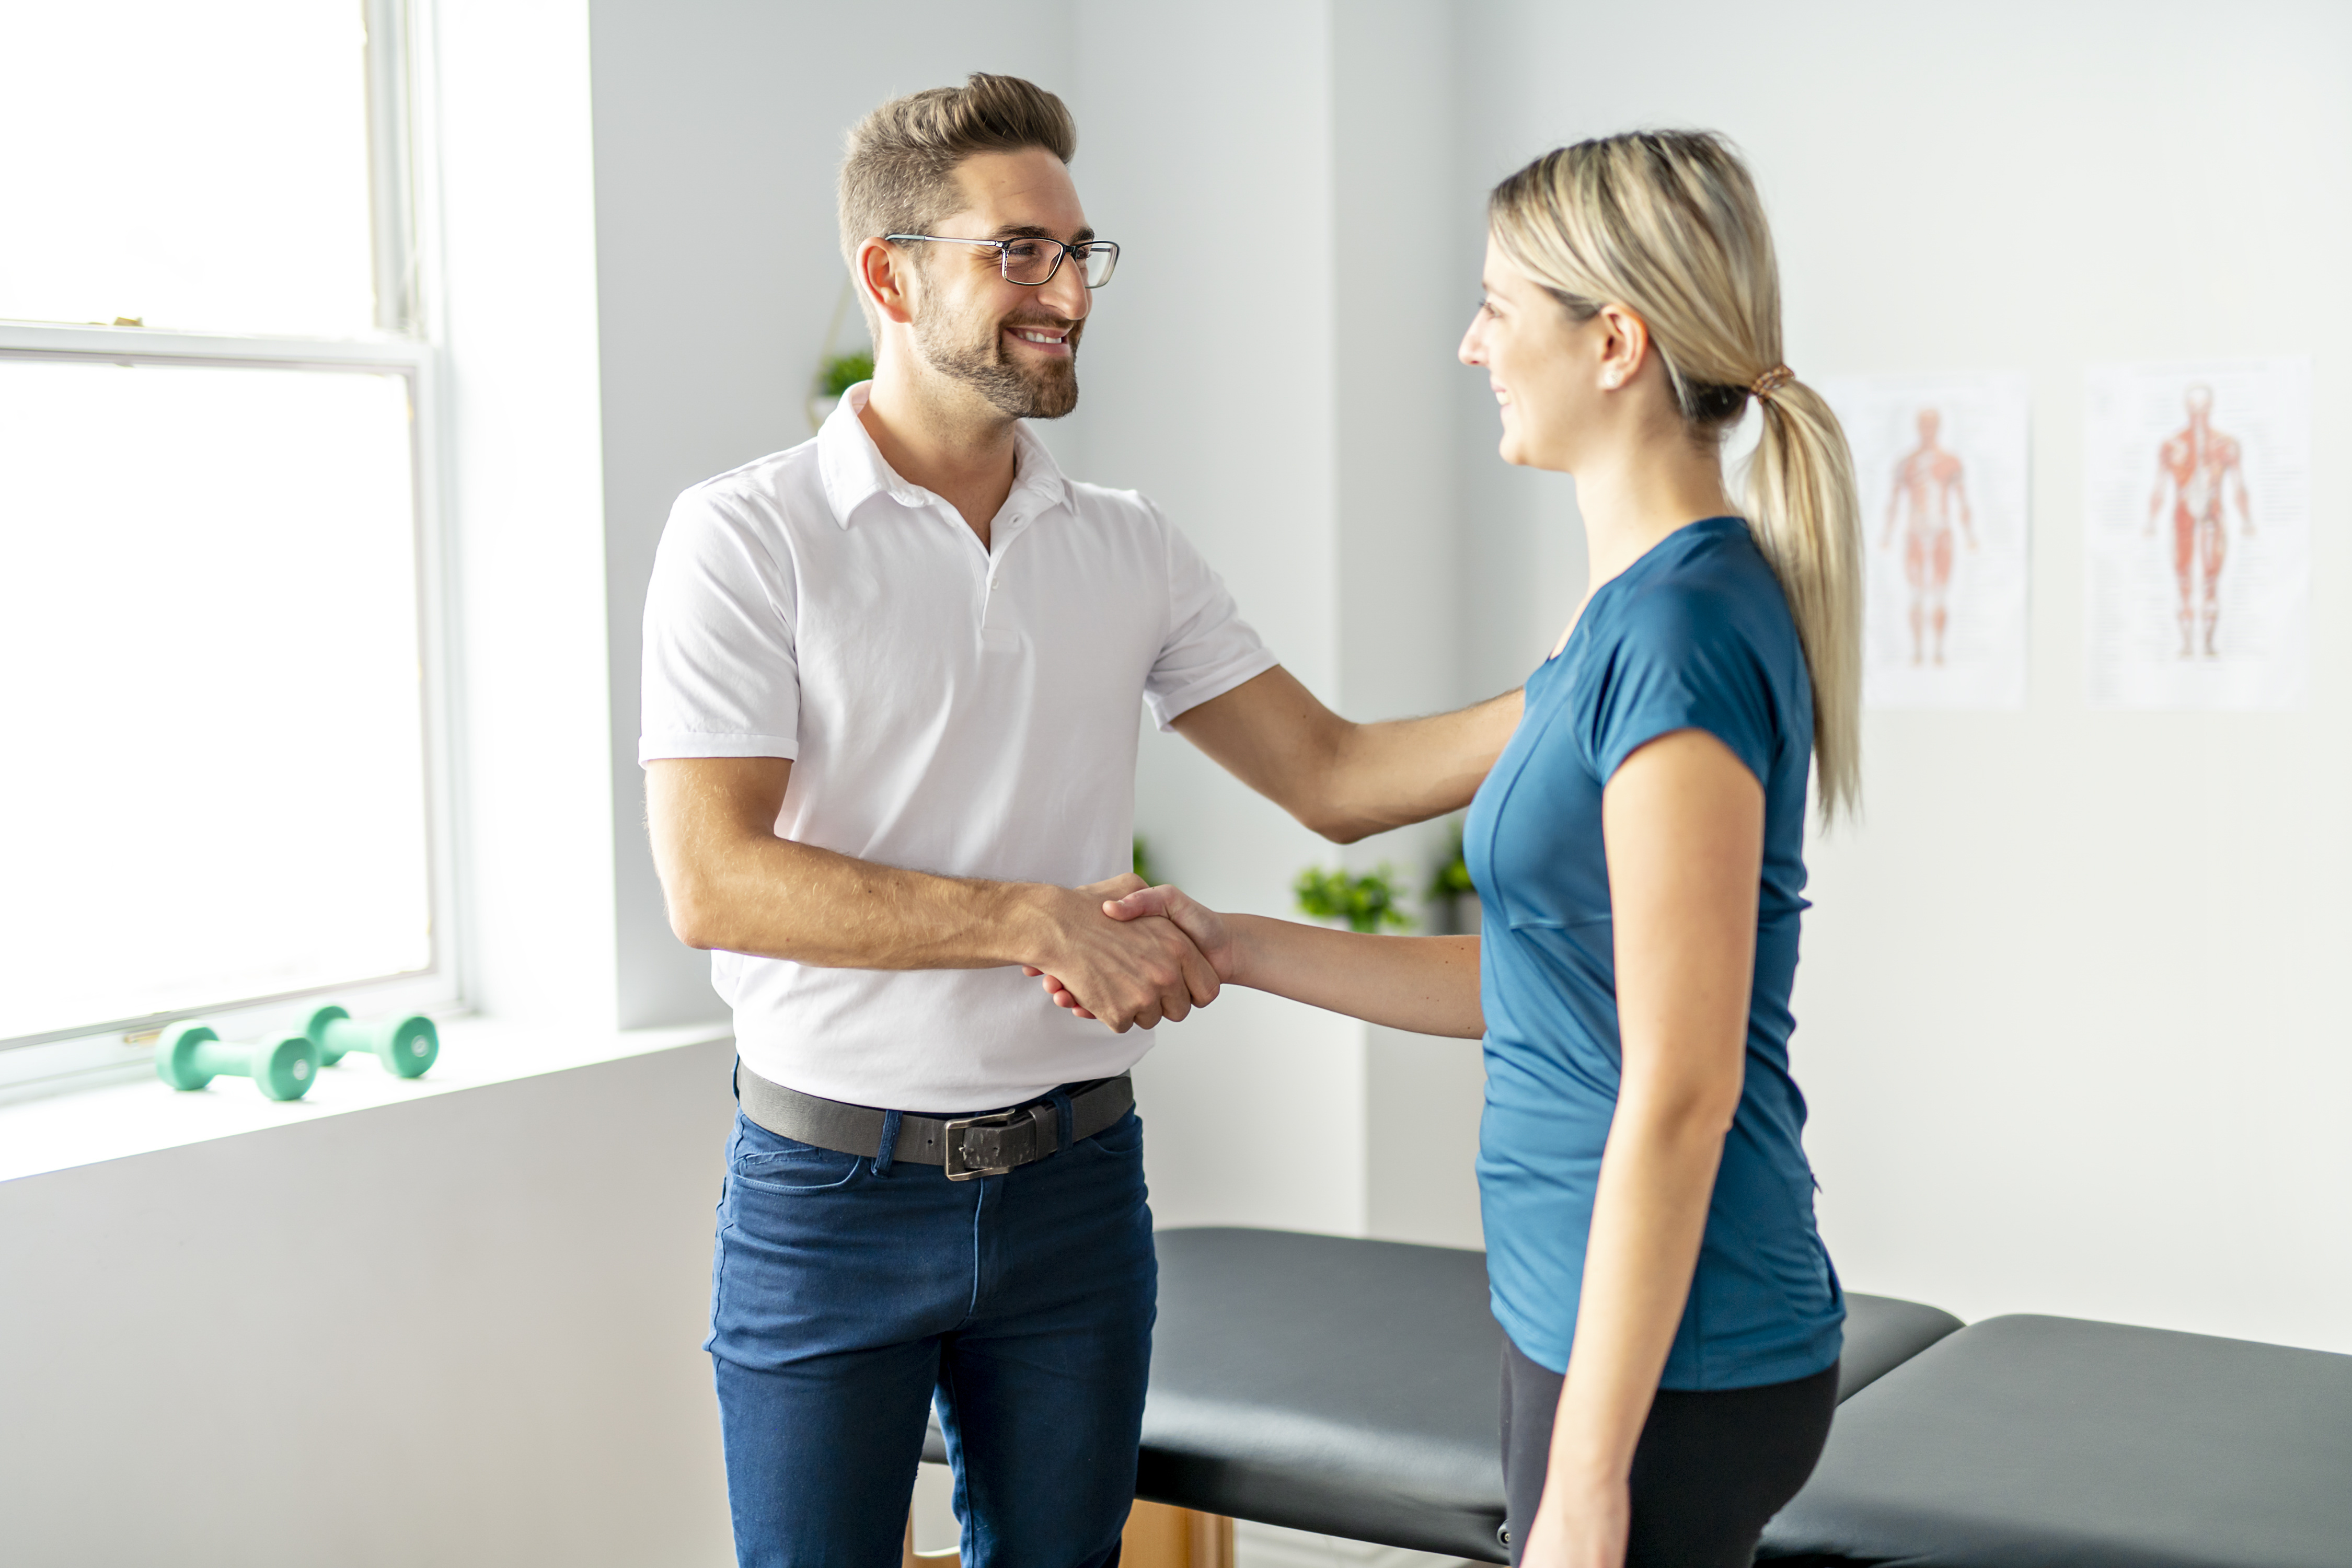 A Modern rehabilitation physiotherapy man at work with woman client hand shake